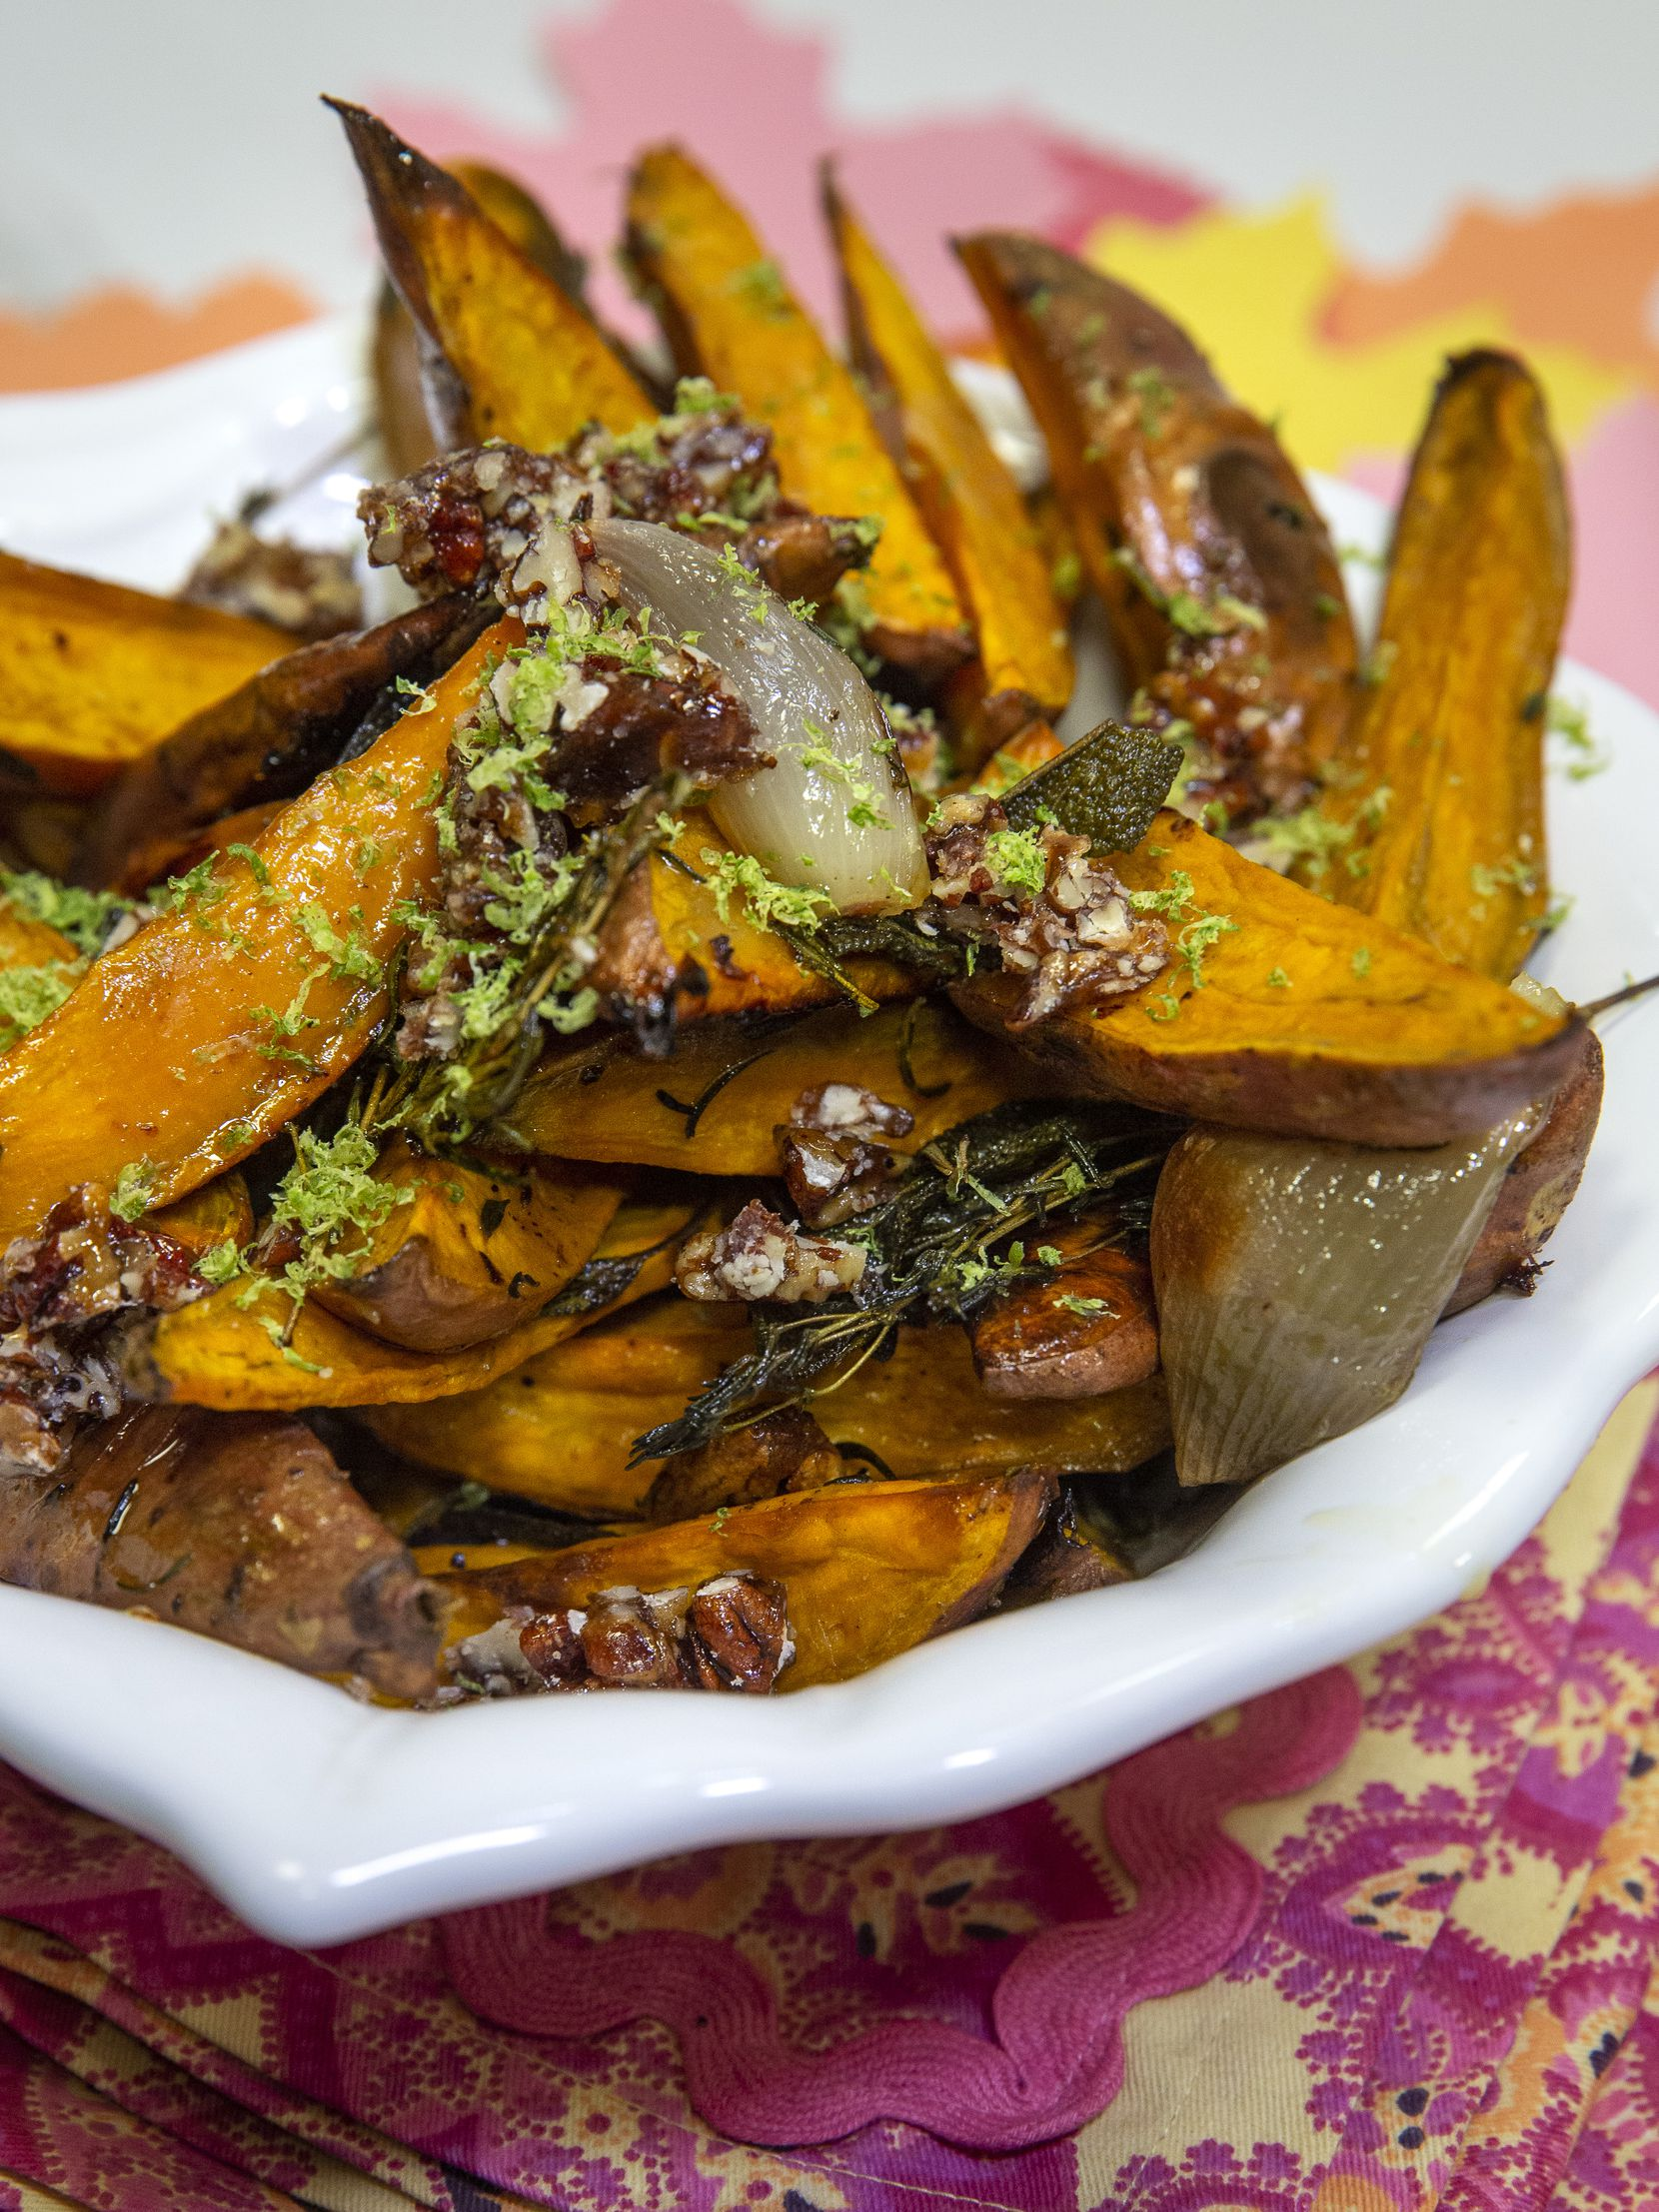 Roasted Sweet Potatoes and Shallots is topped with lime zest and Spicy Pecans.